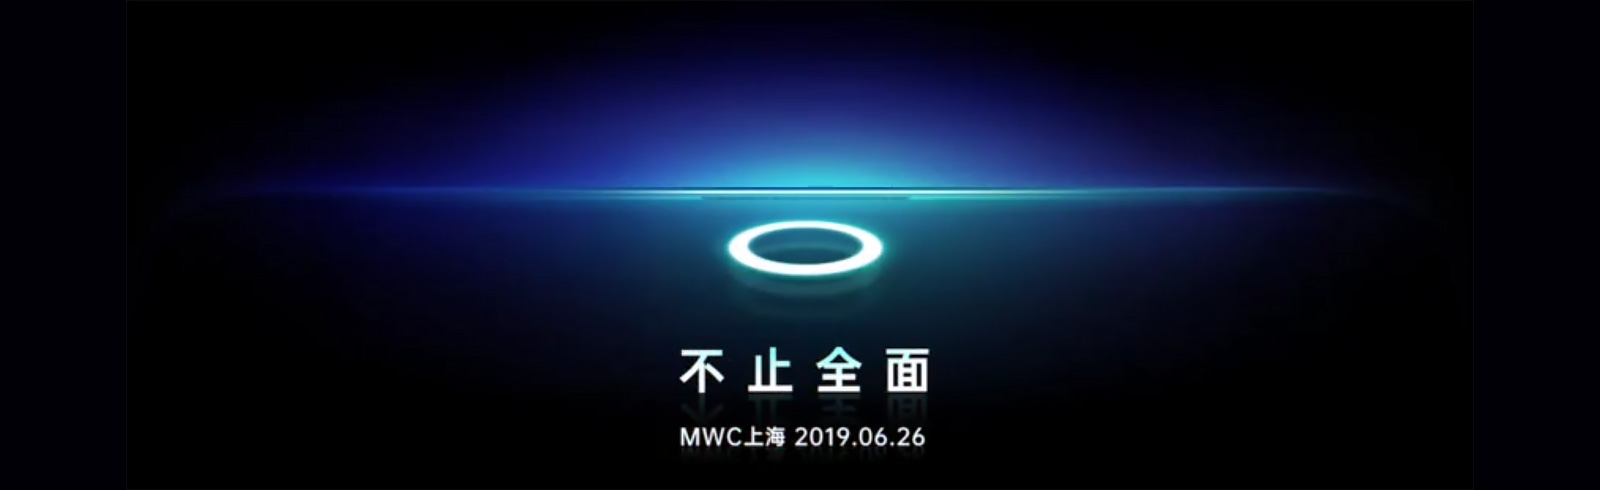 Oppo will showcase a smartphone with an under-display camera at the MWC 2019 in Shanghai